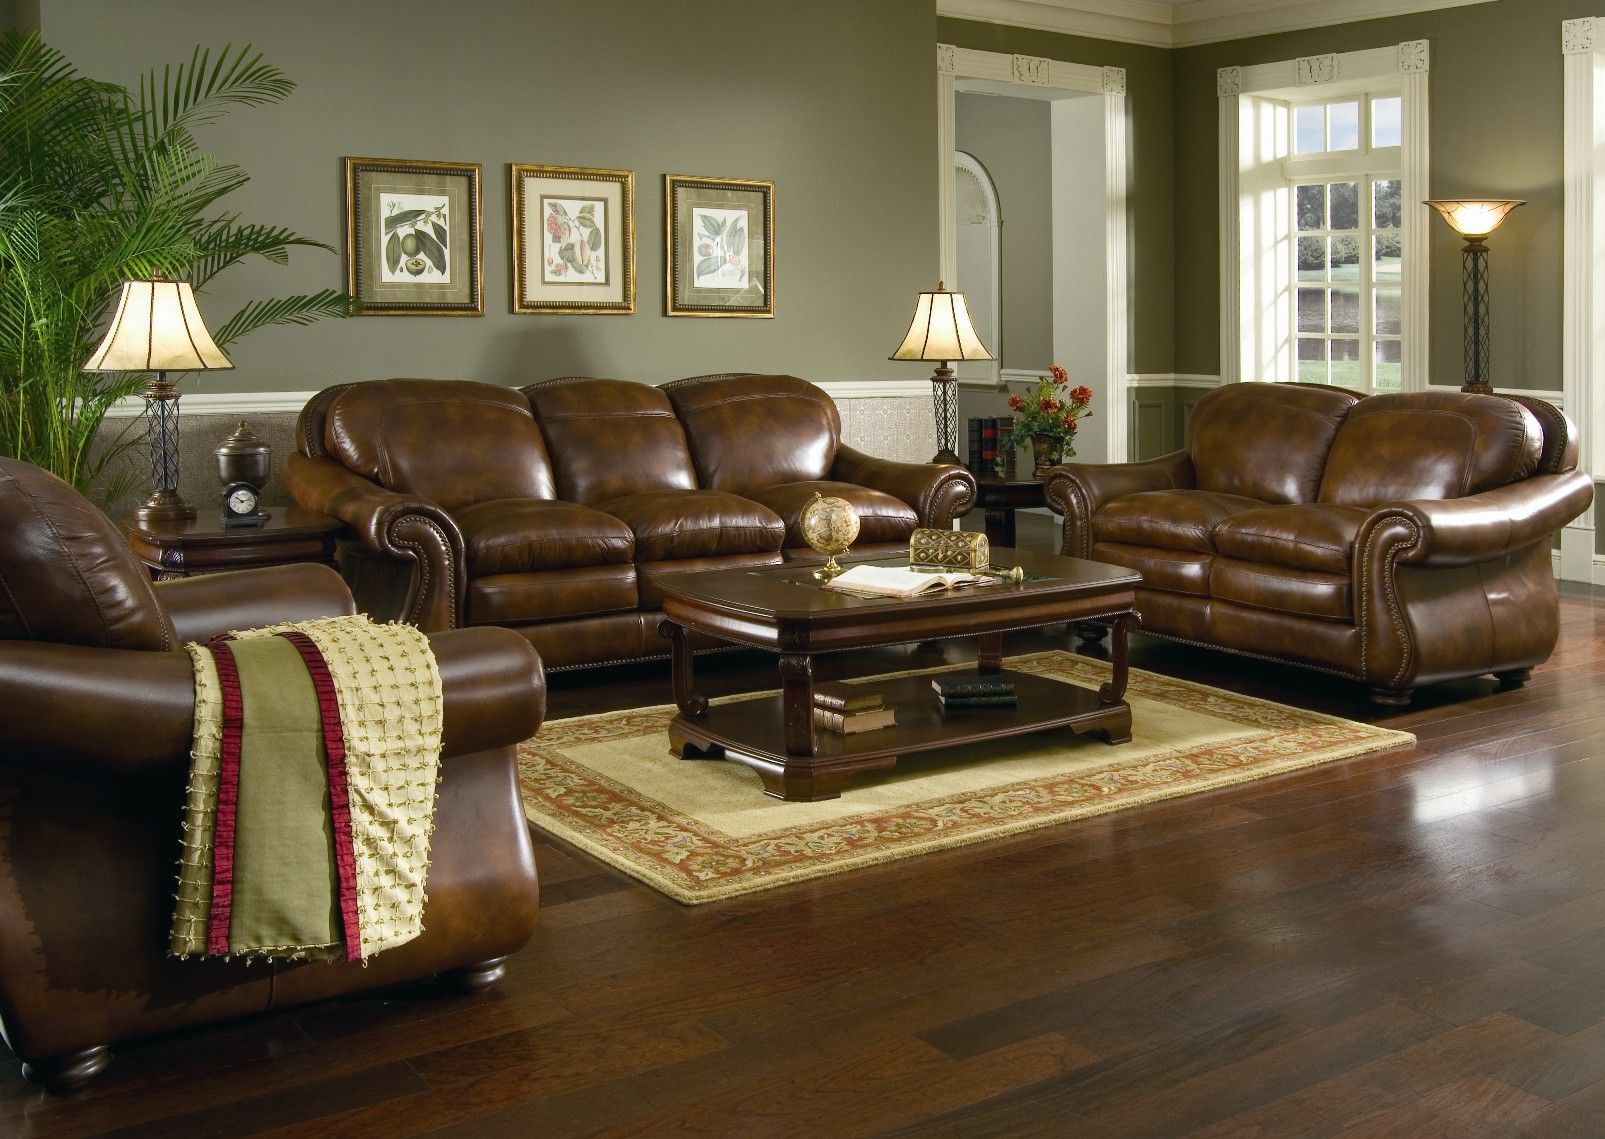 Paint ideas living room brown furniture colors of living room leather sofa minimalist home decor design ideas